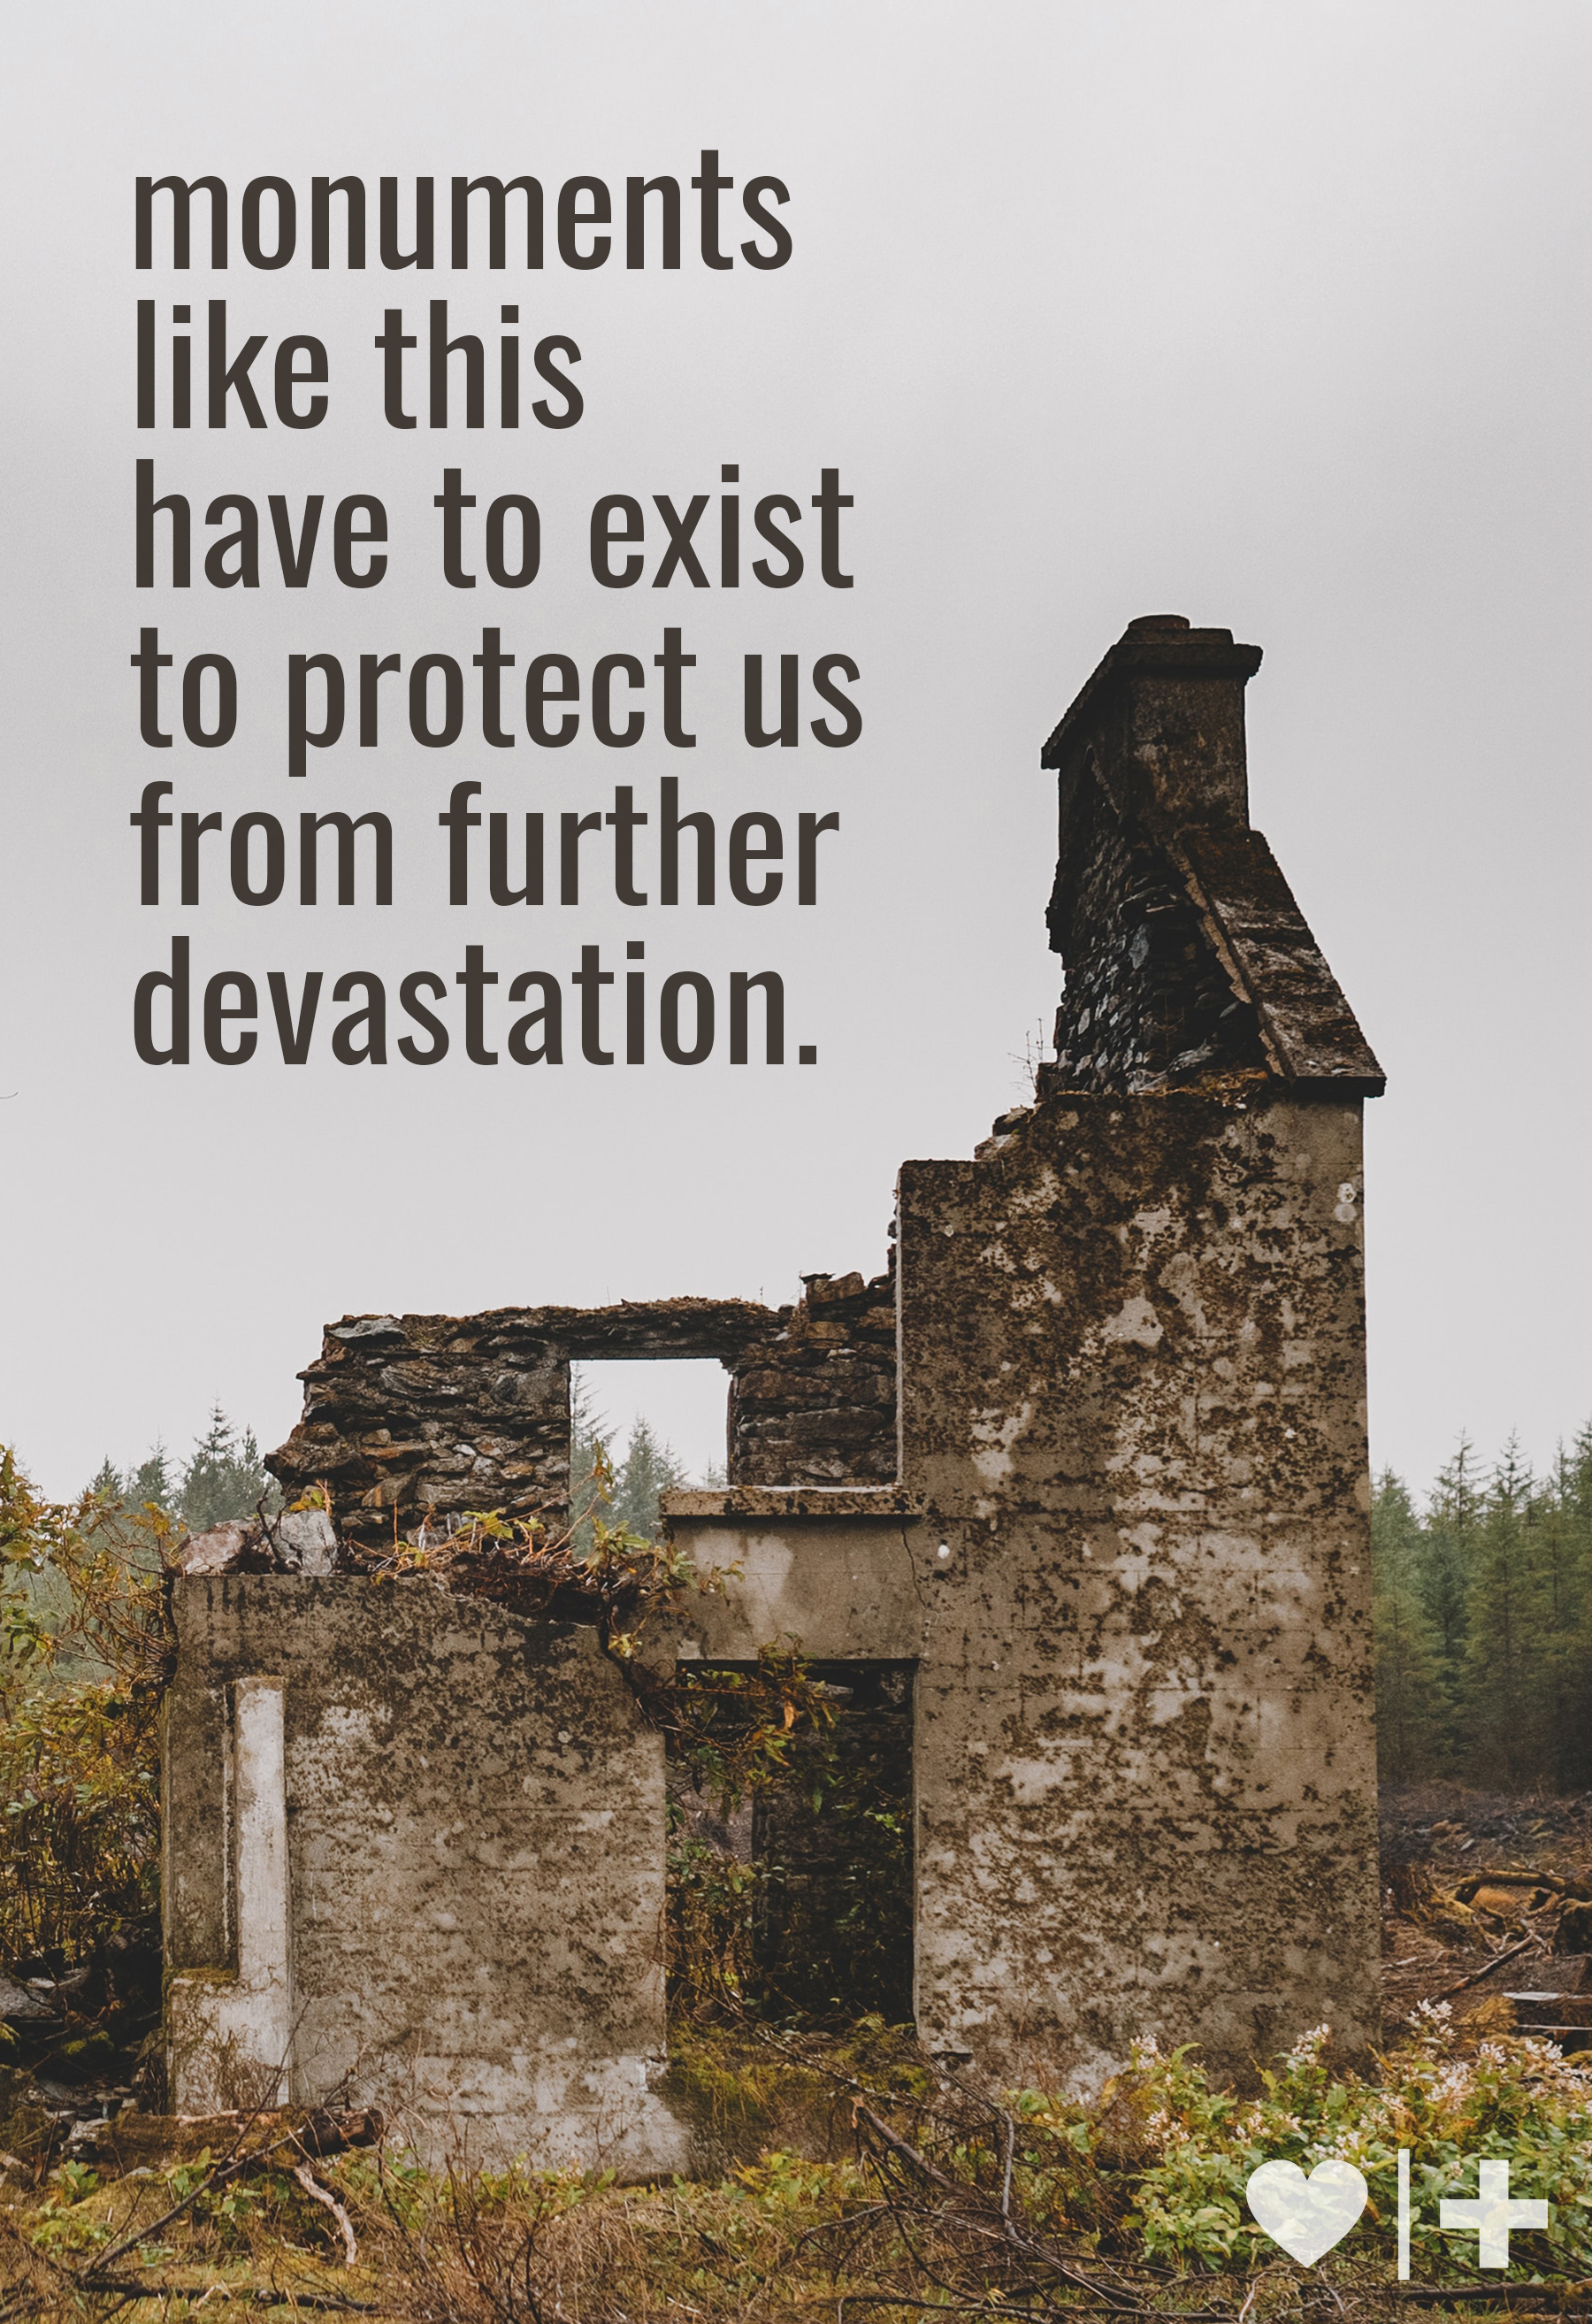 affair recovery-survivors Blog-Elizabeth-Ruins-monuments like this have to exist to protect us from further devastation